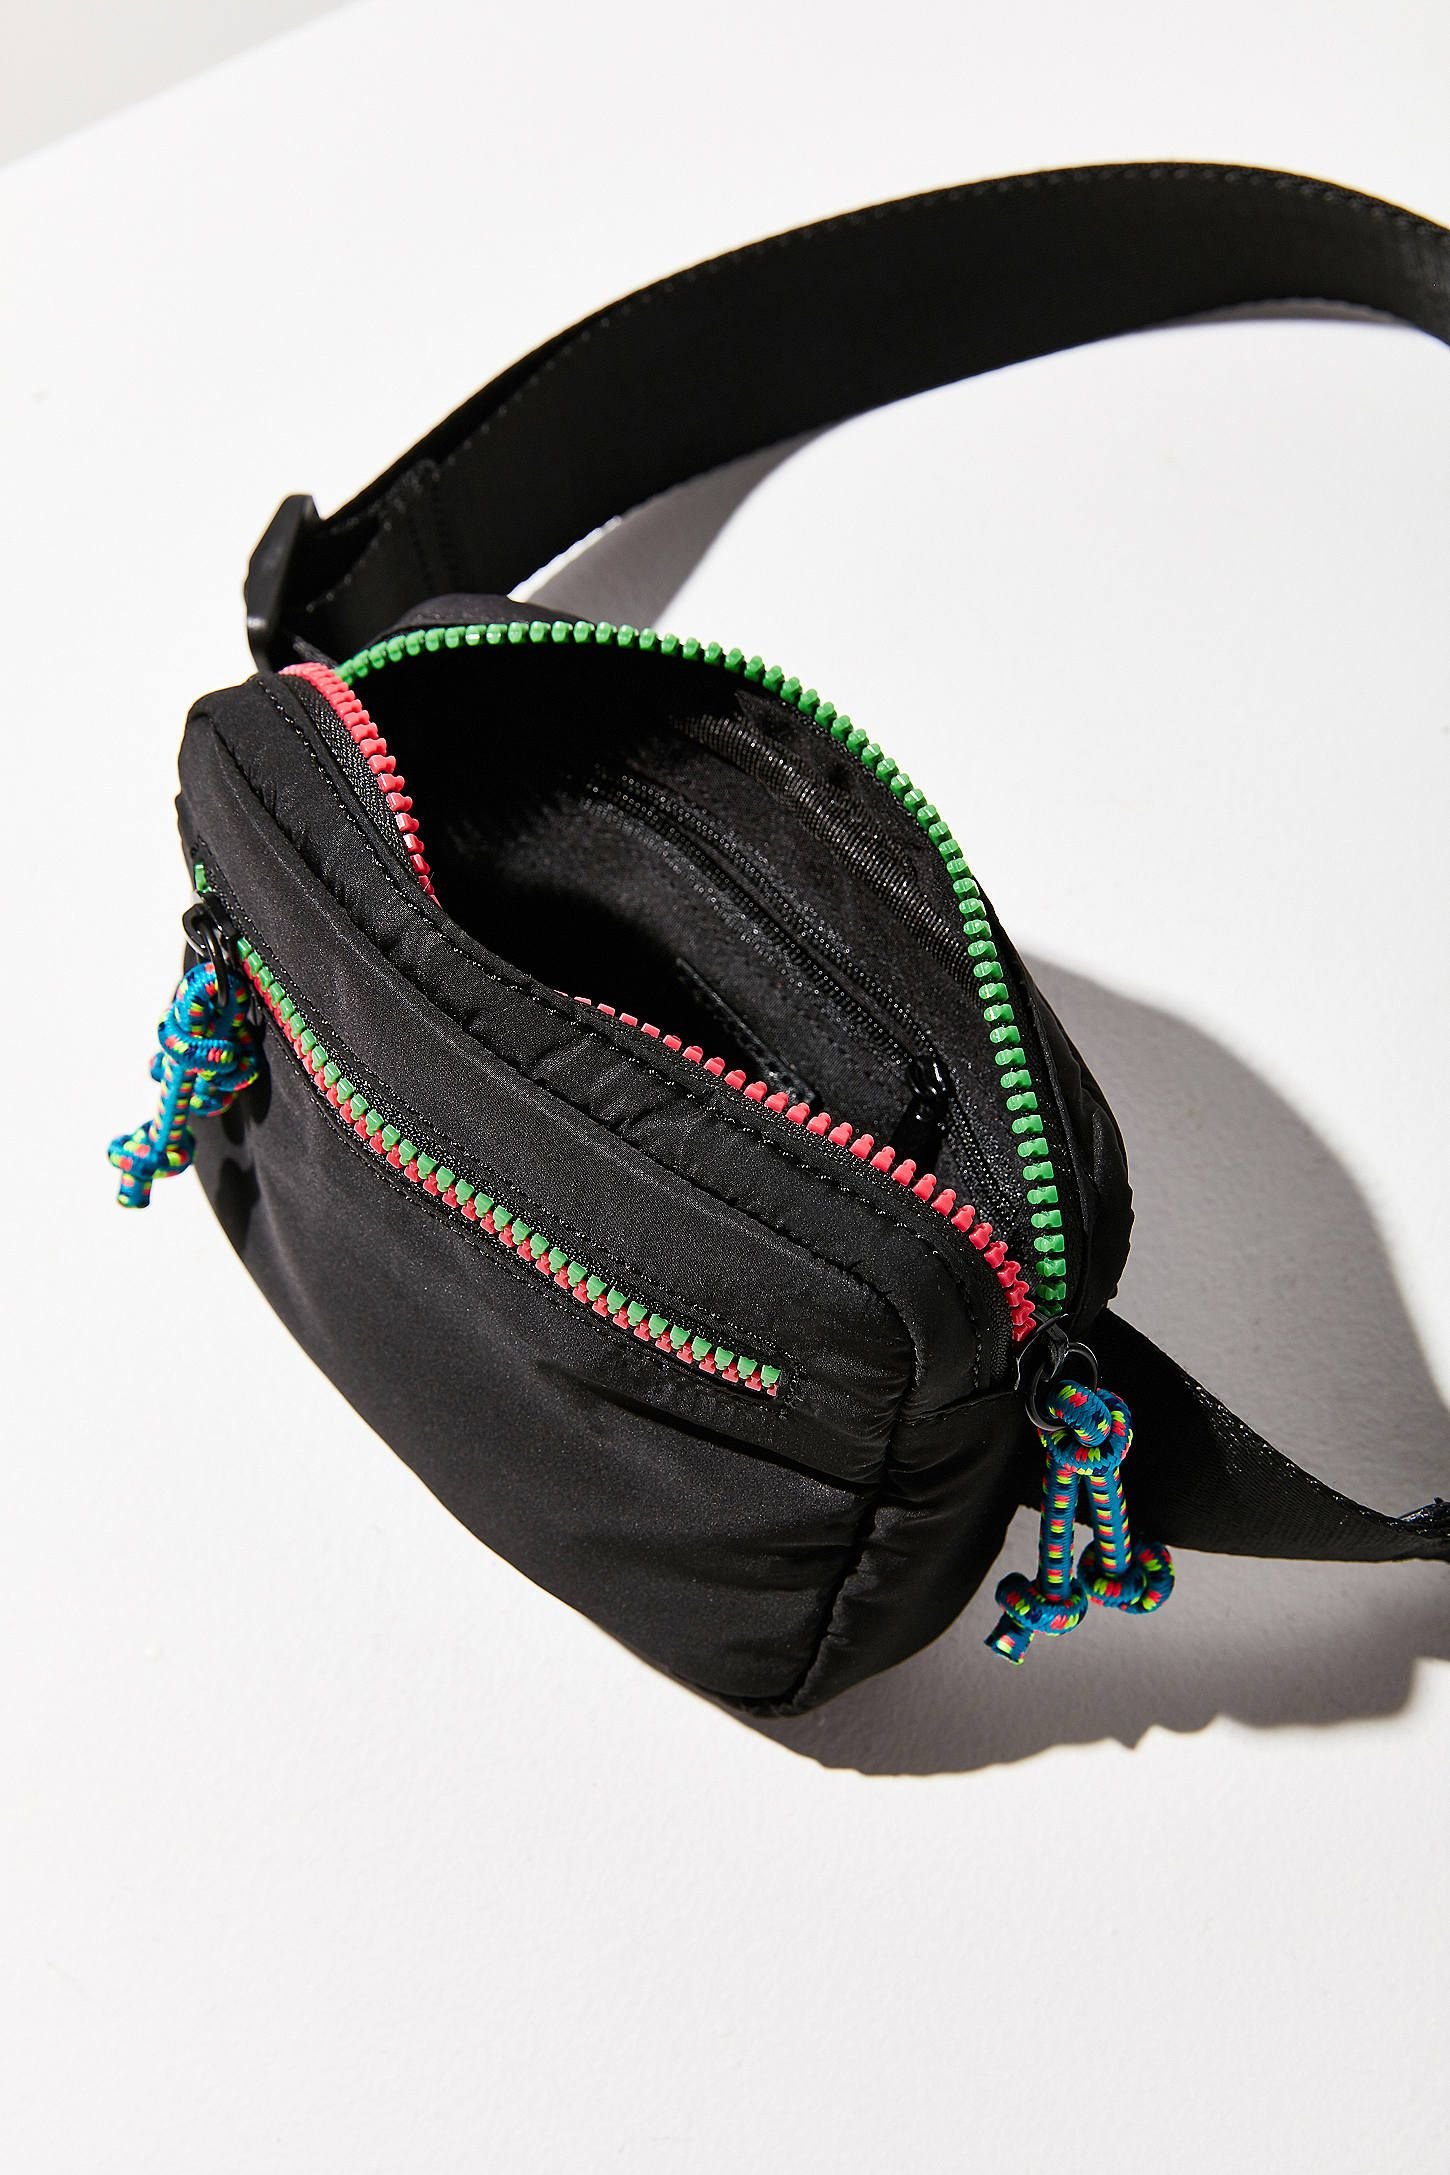 Shop Square Belt Bag at Urban Outfitters today. We carry all the latest styles, colors and brands for you to choose from right here.